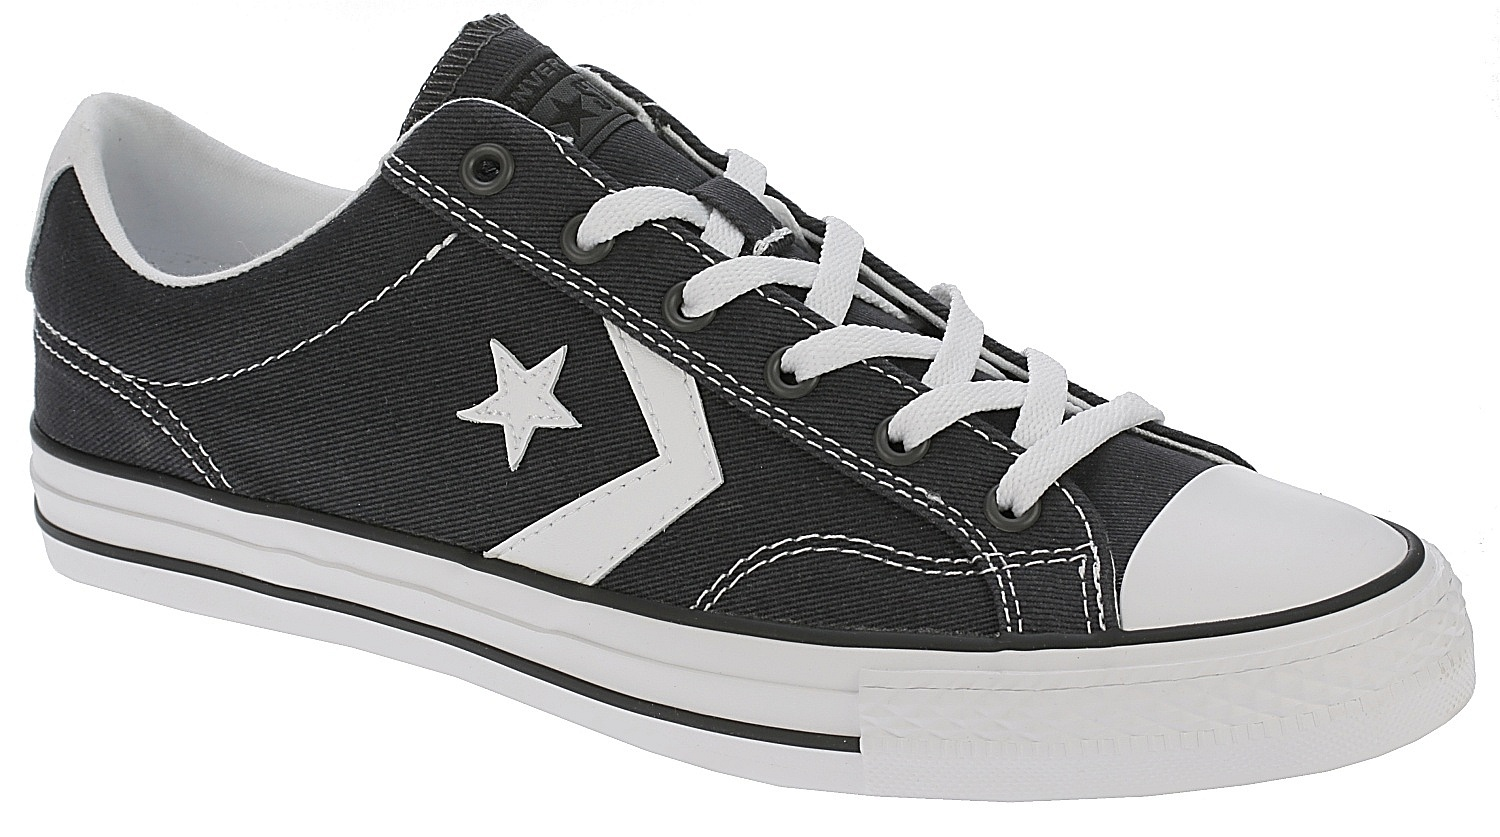 topánky Converse Star Player OX - 160559 Almost Black White Black -  Snowboard shop f6b98c51ddd